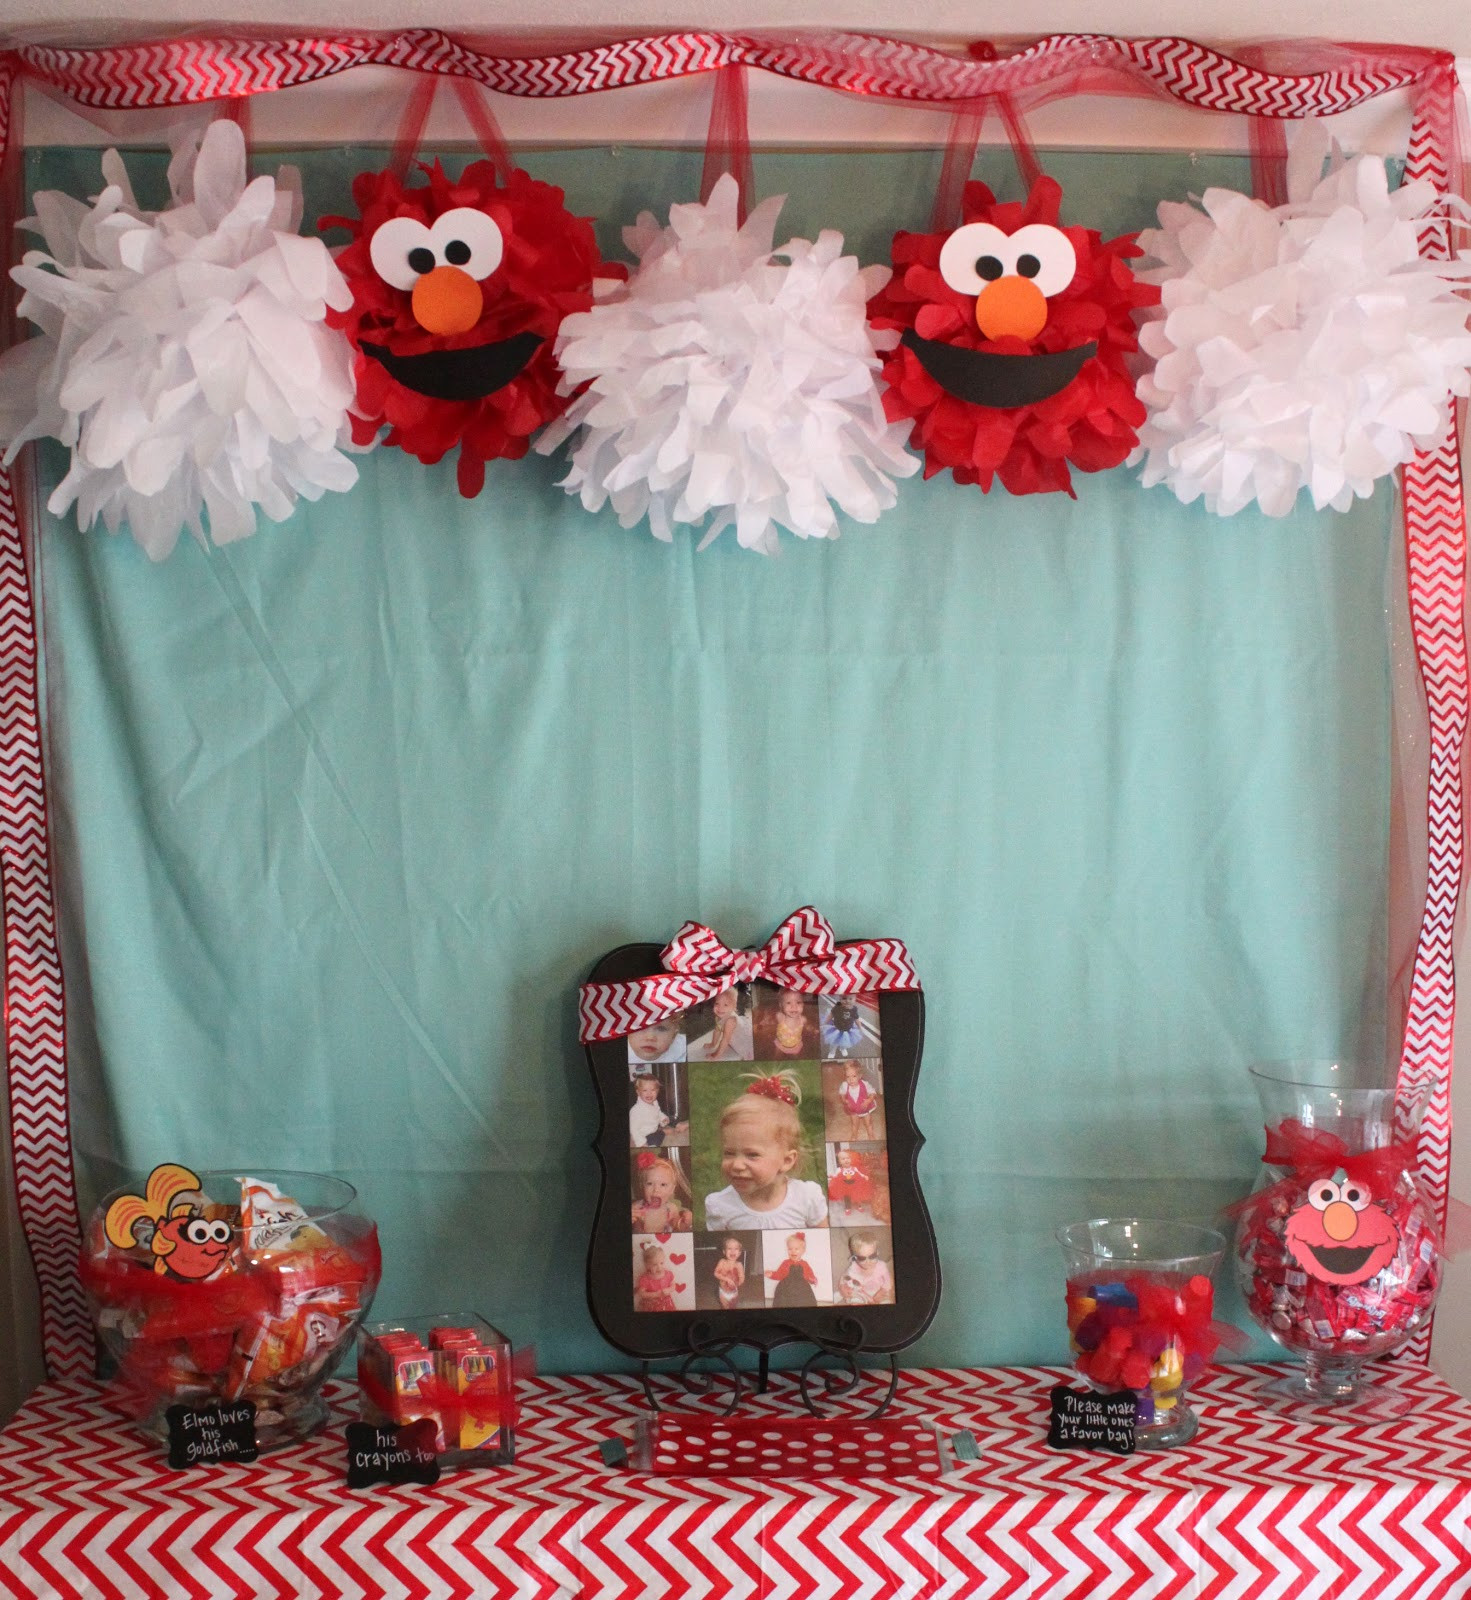 Best ideas about Elmo Birthday Party . Save or Pin Handmade Happiness Elmo 2nd Birthday Party Now.